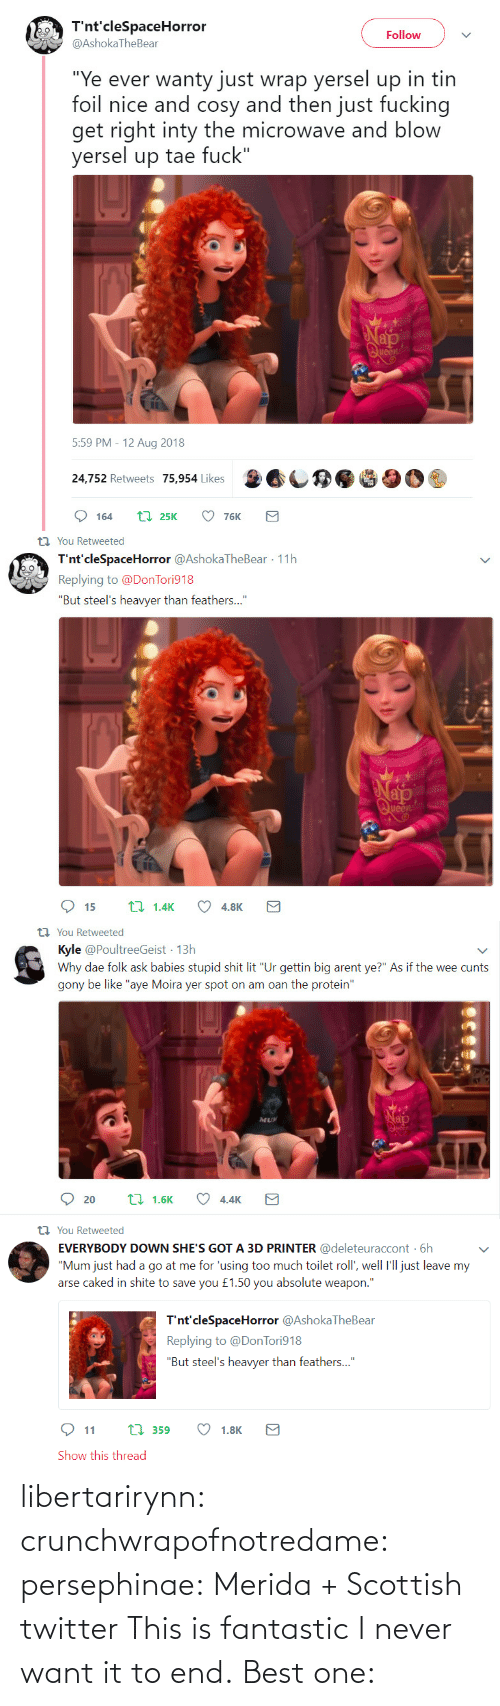 Twitter: libertarirynn:  crunchwrapofnotredame:  persephinae: Merida + Scottish twitter  This is fantastic I never want it to end.   Best one: